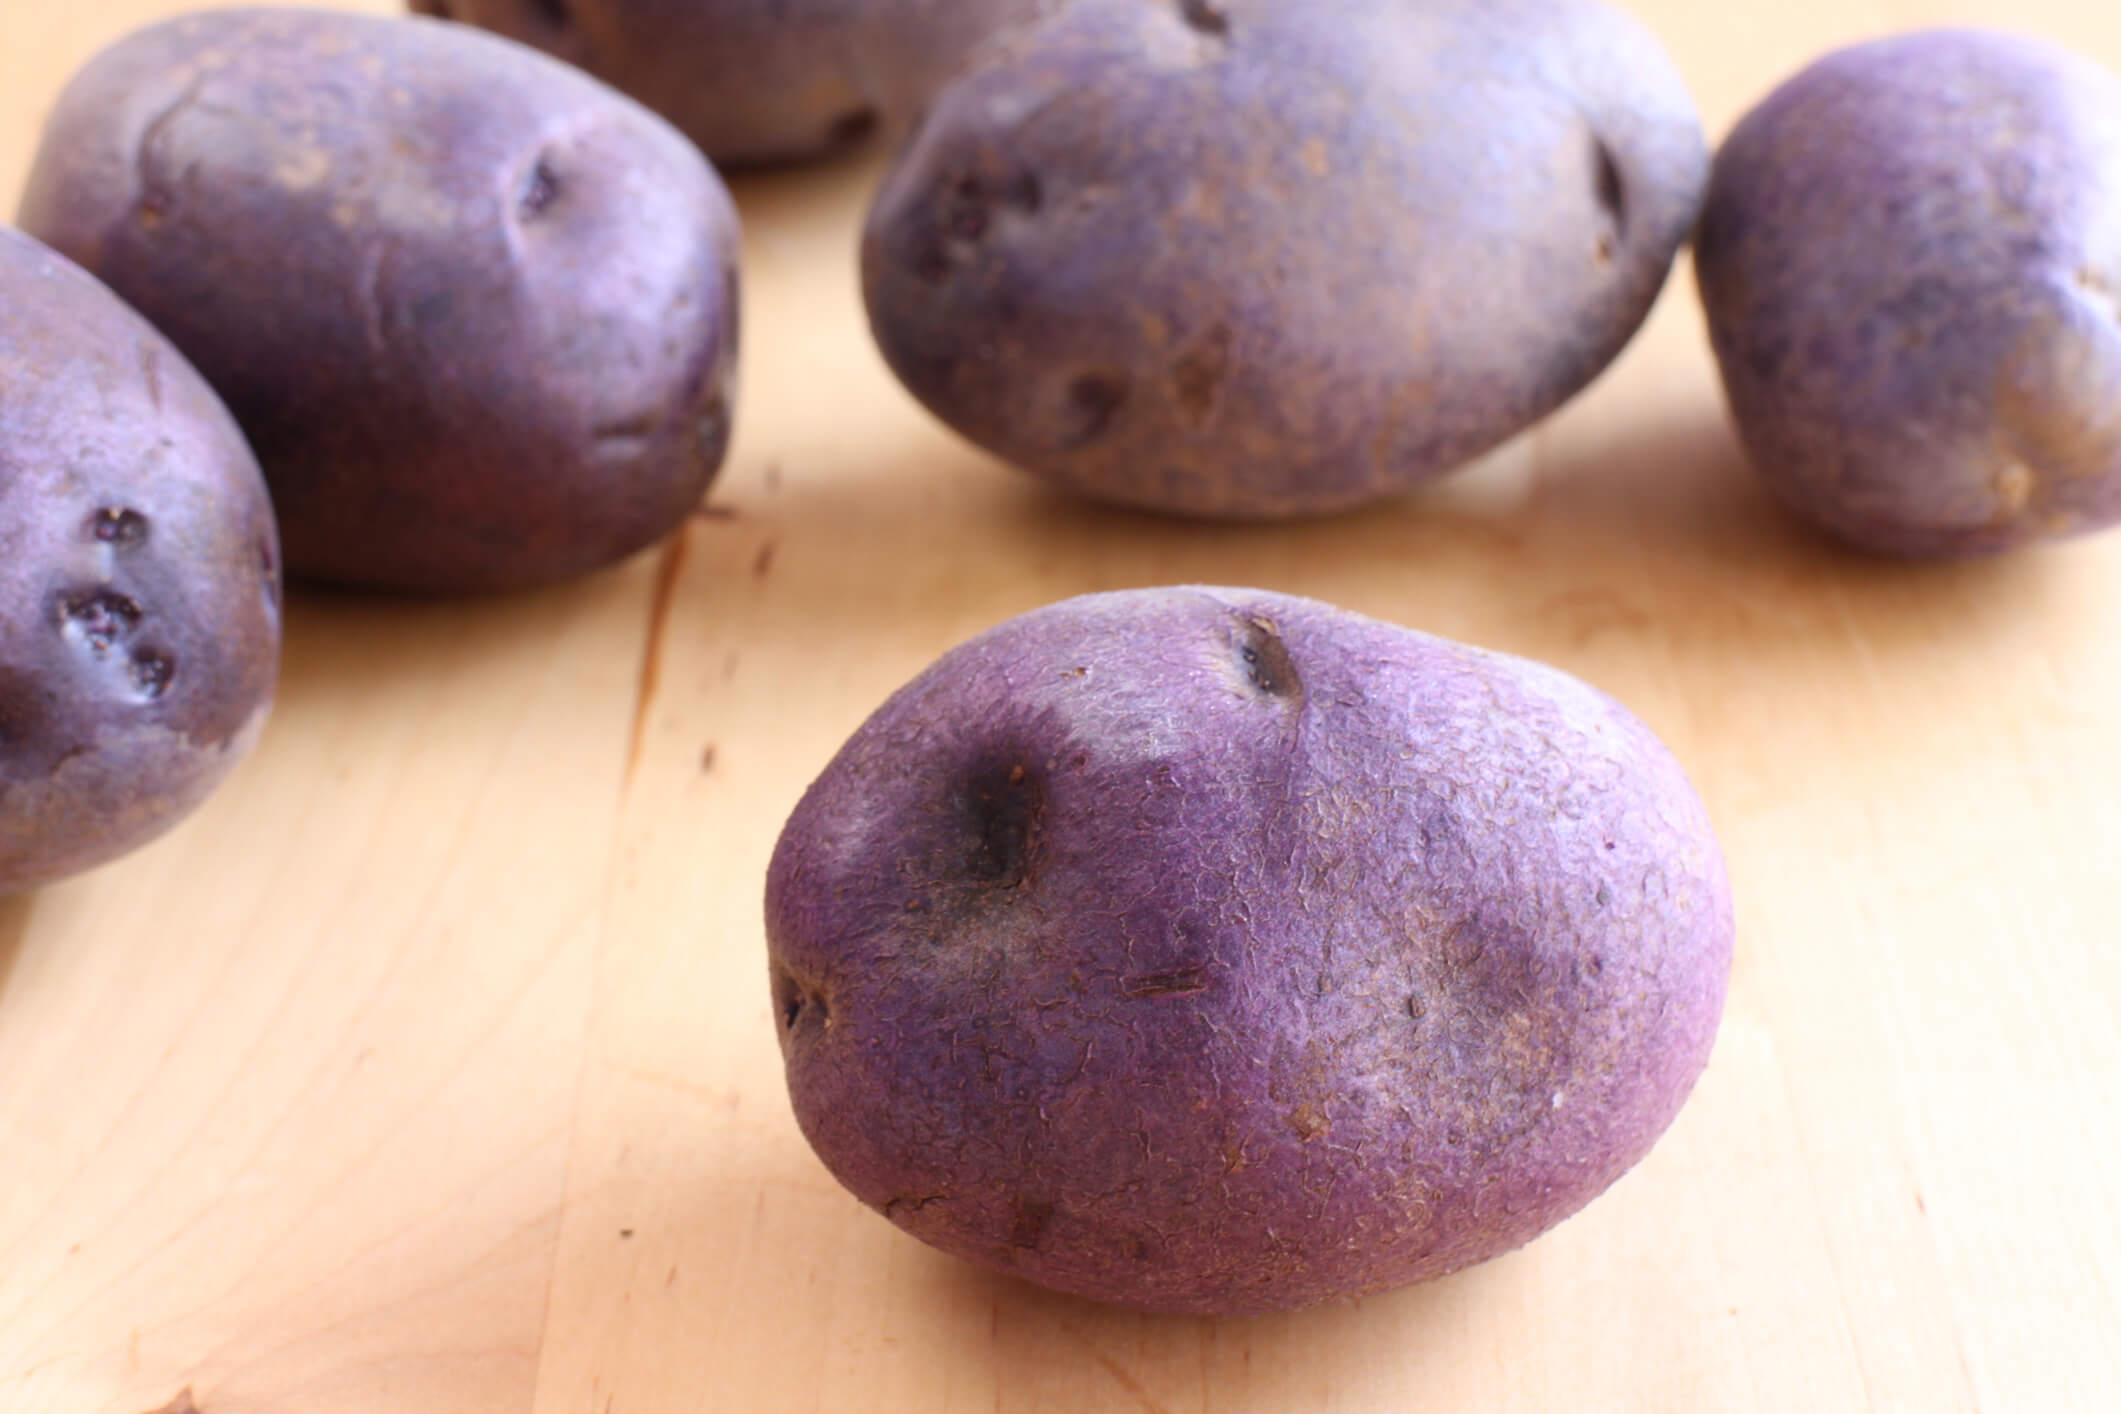 Foods for Cancer Prevention: Purple potatoes